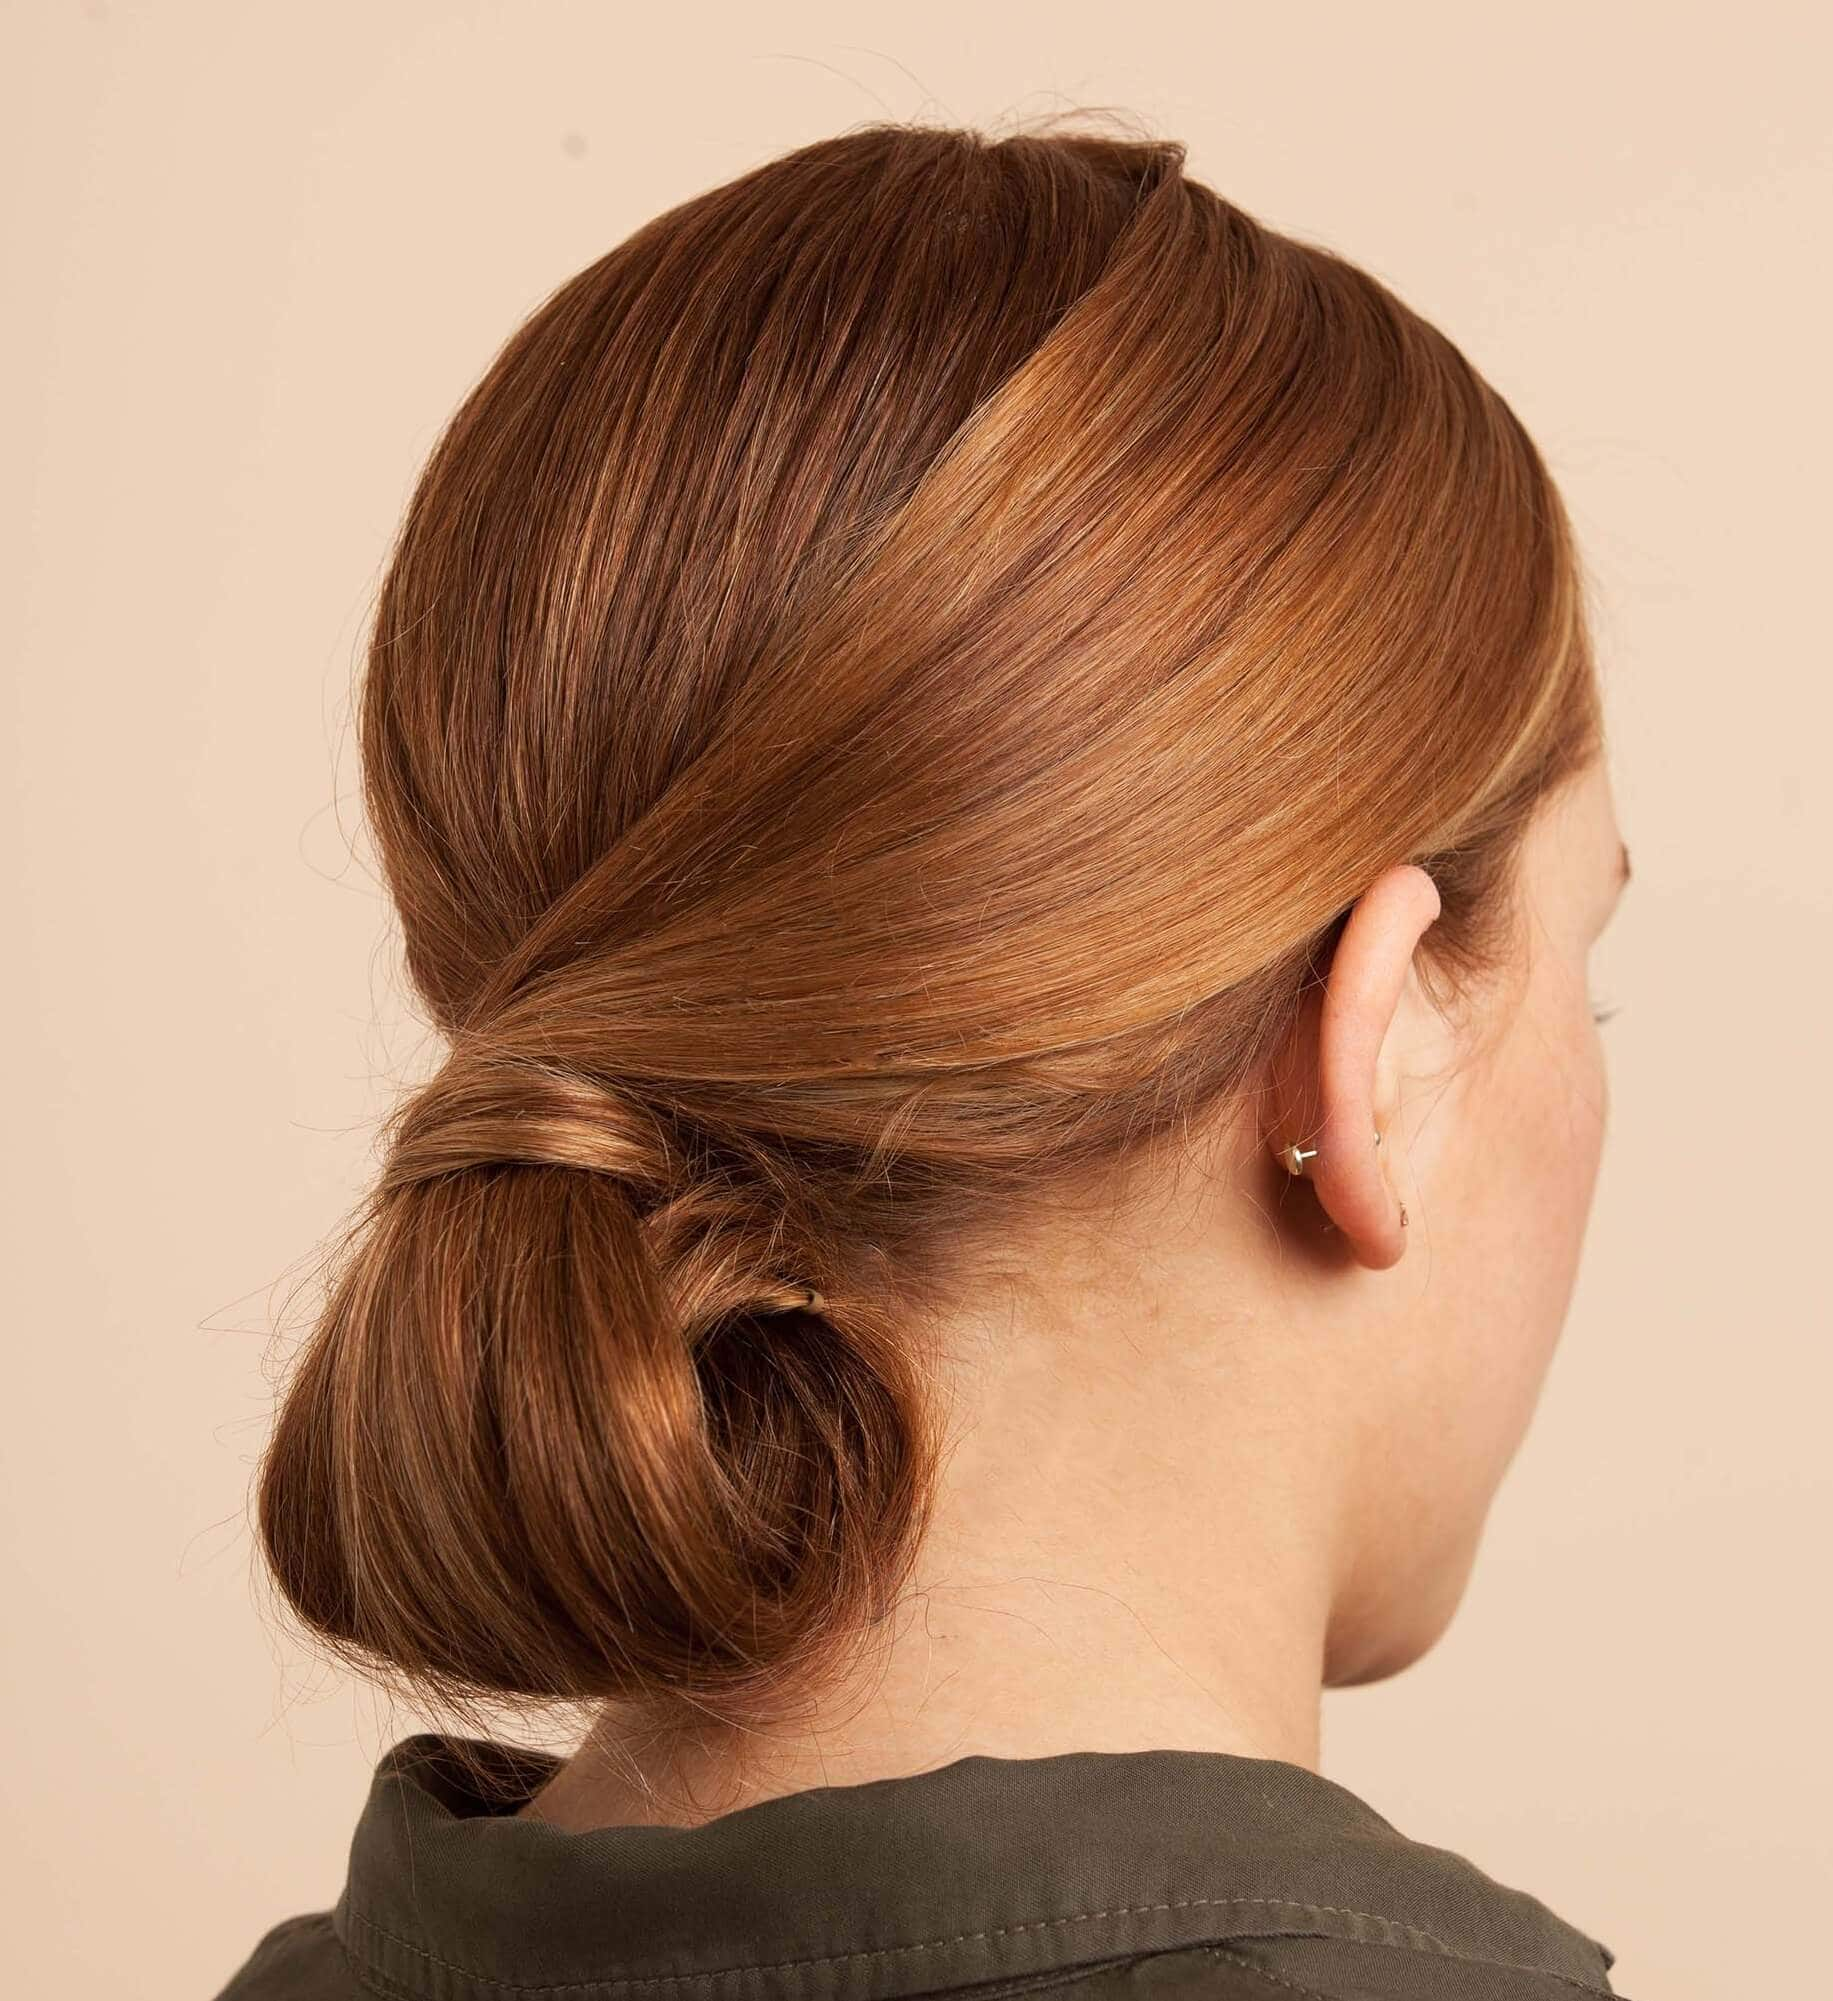 Back view of a woman's hair with a smooth and sleek chignon